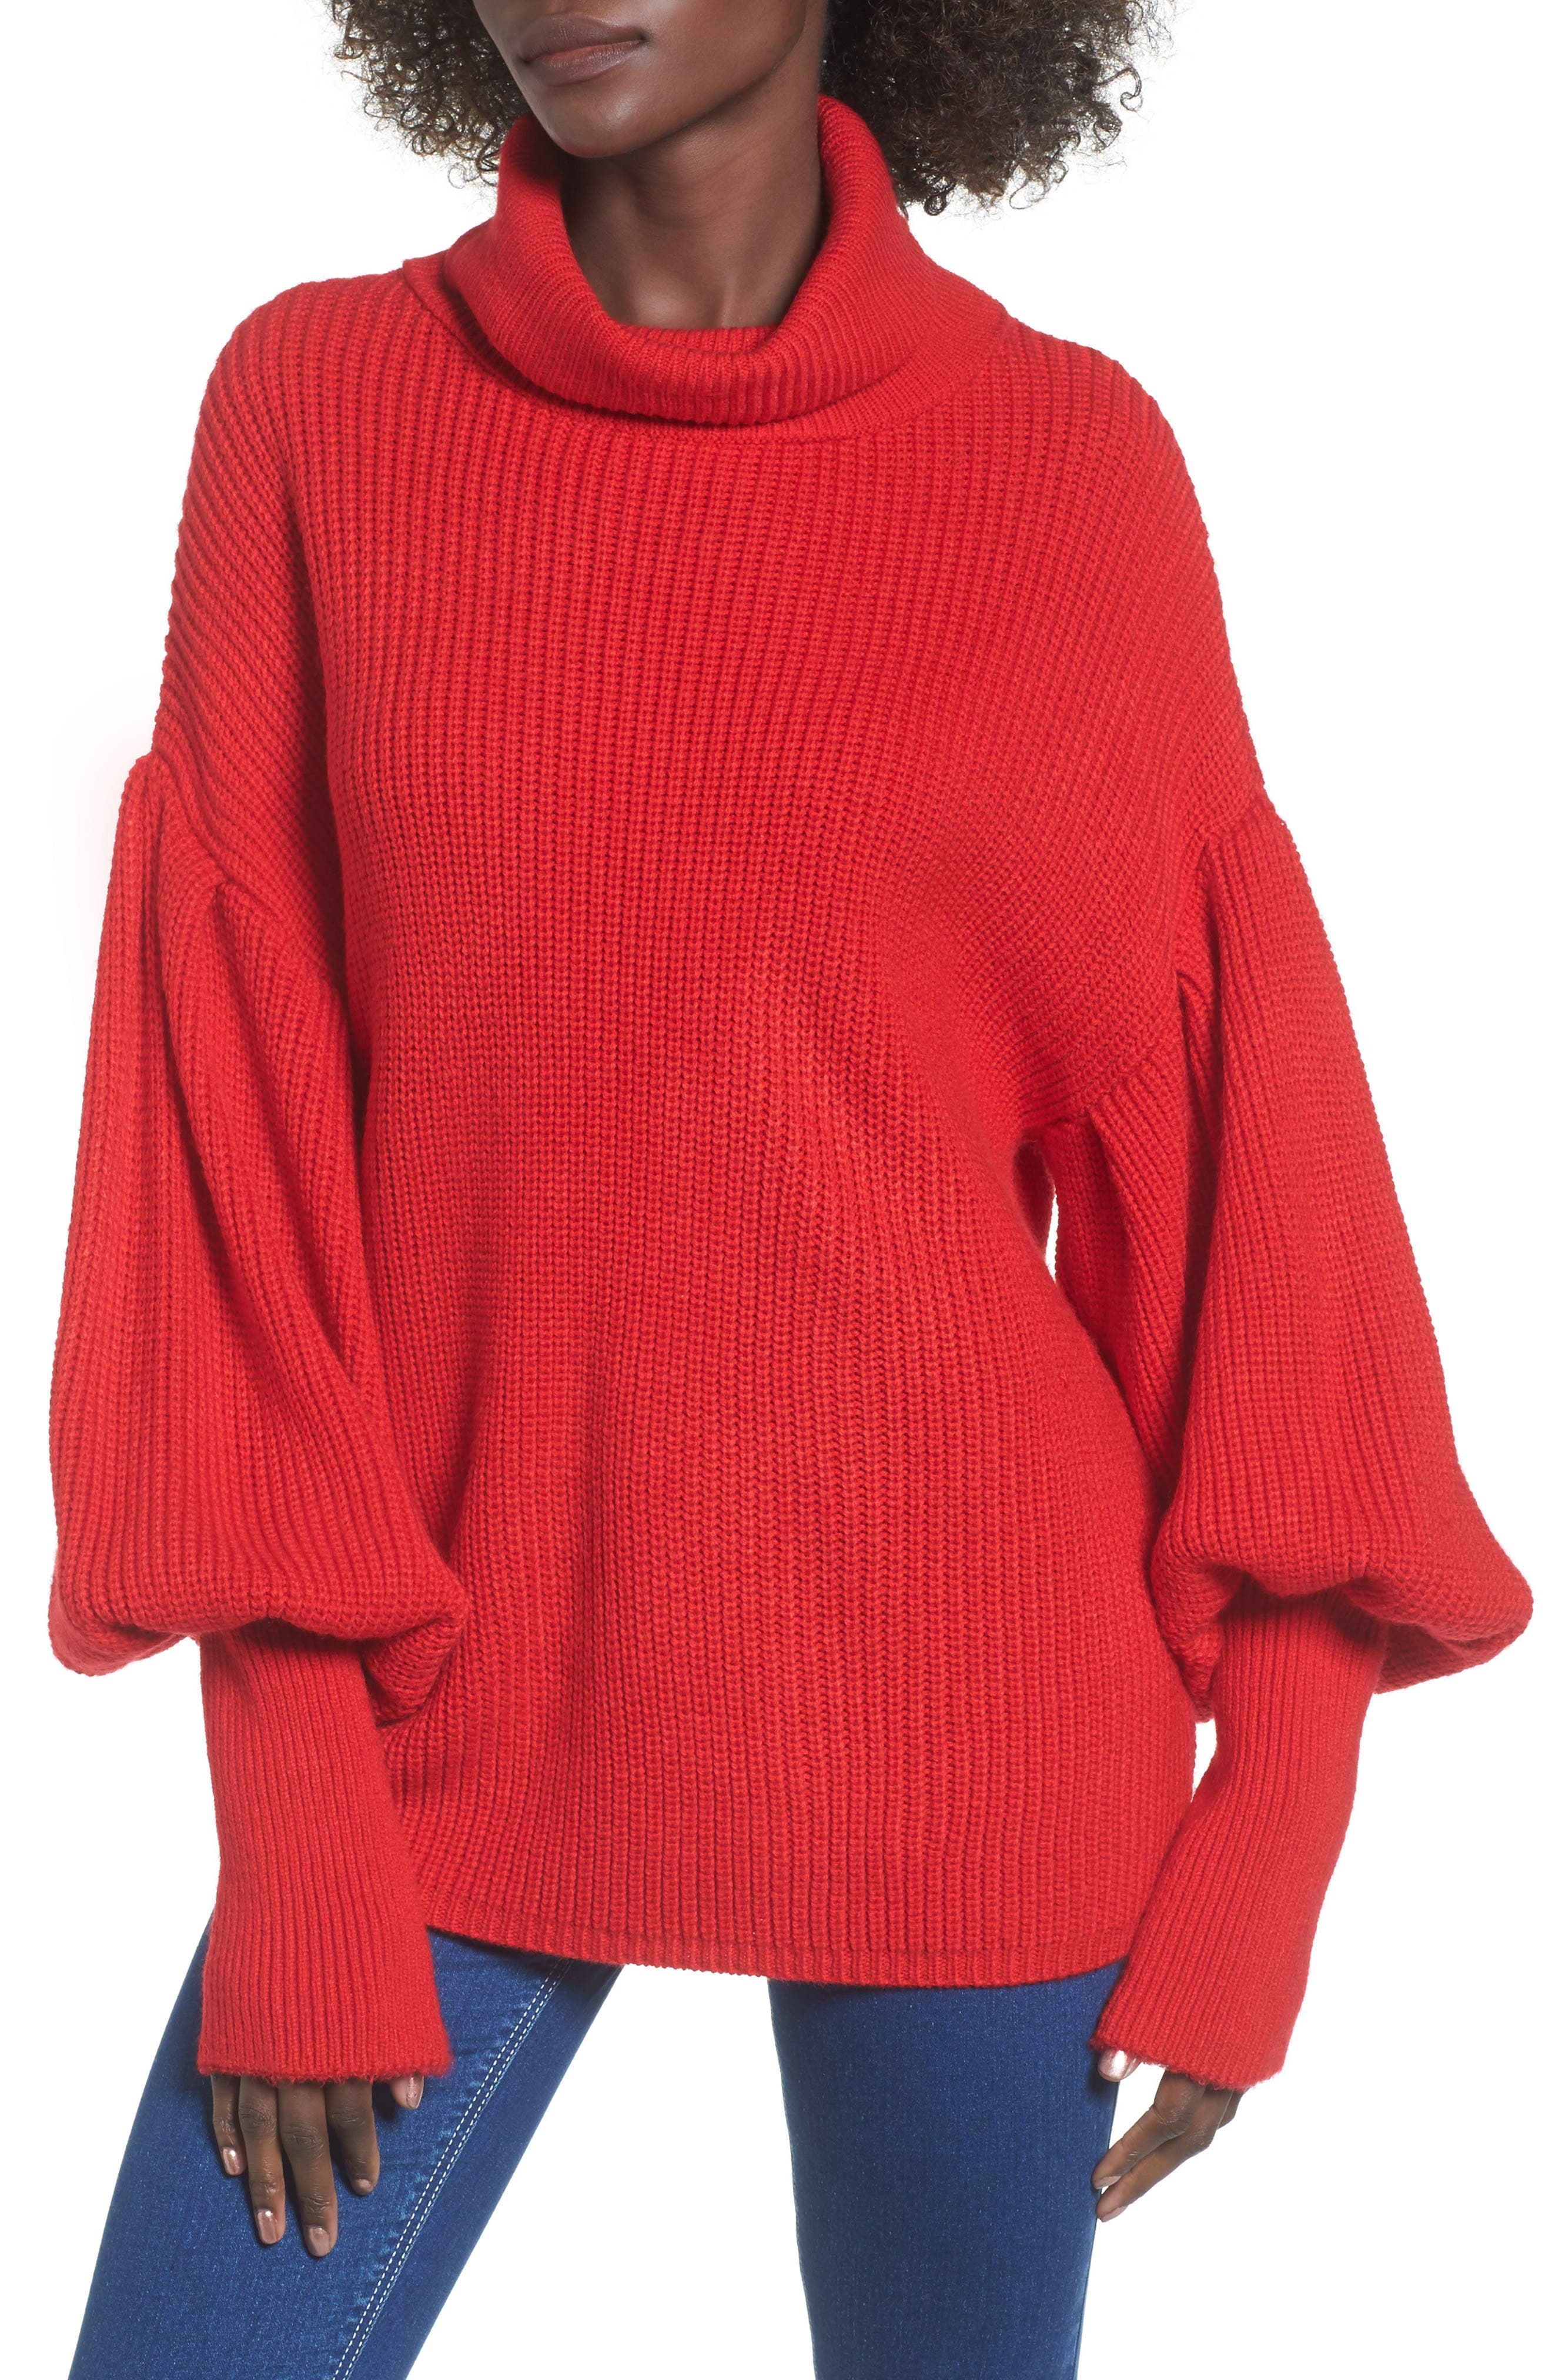 Alternate Image 1 Selected - Topshop Balloon Sleeve Turtleneck Sweater